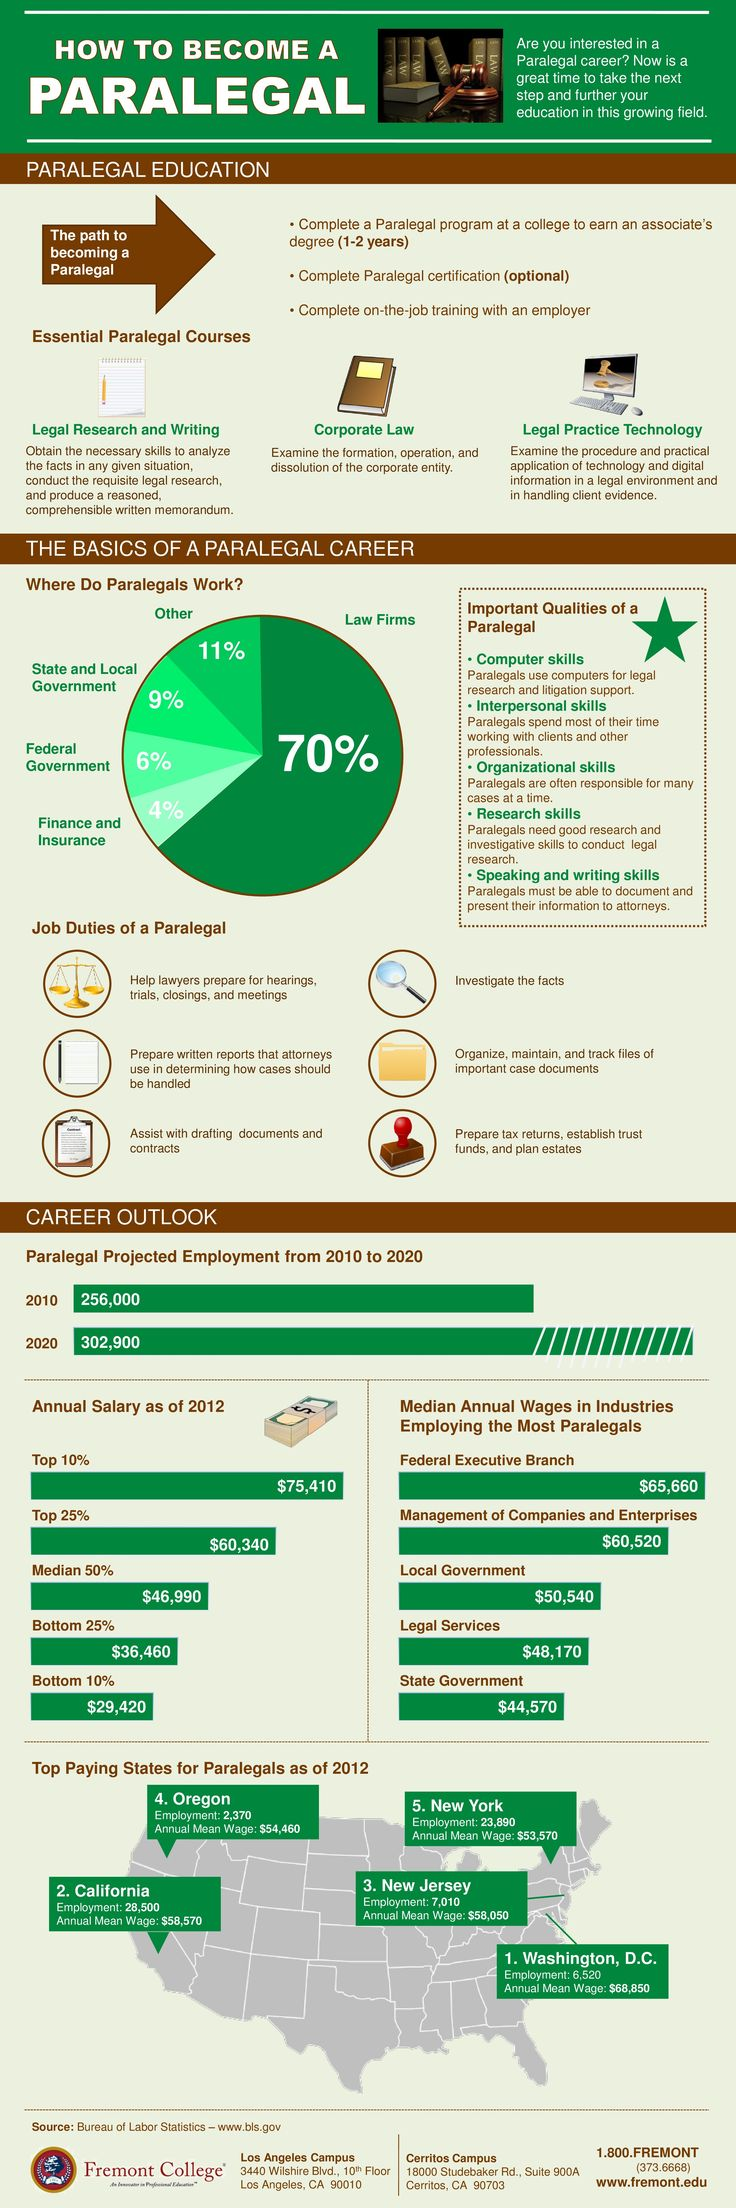 How to a Paralegal Infographic Education